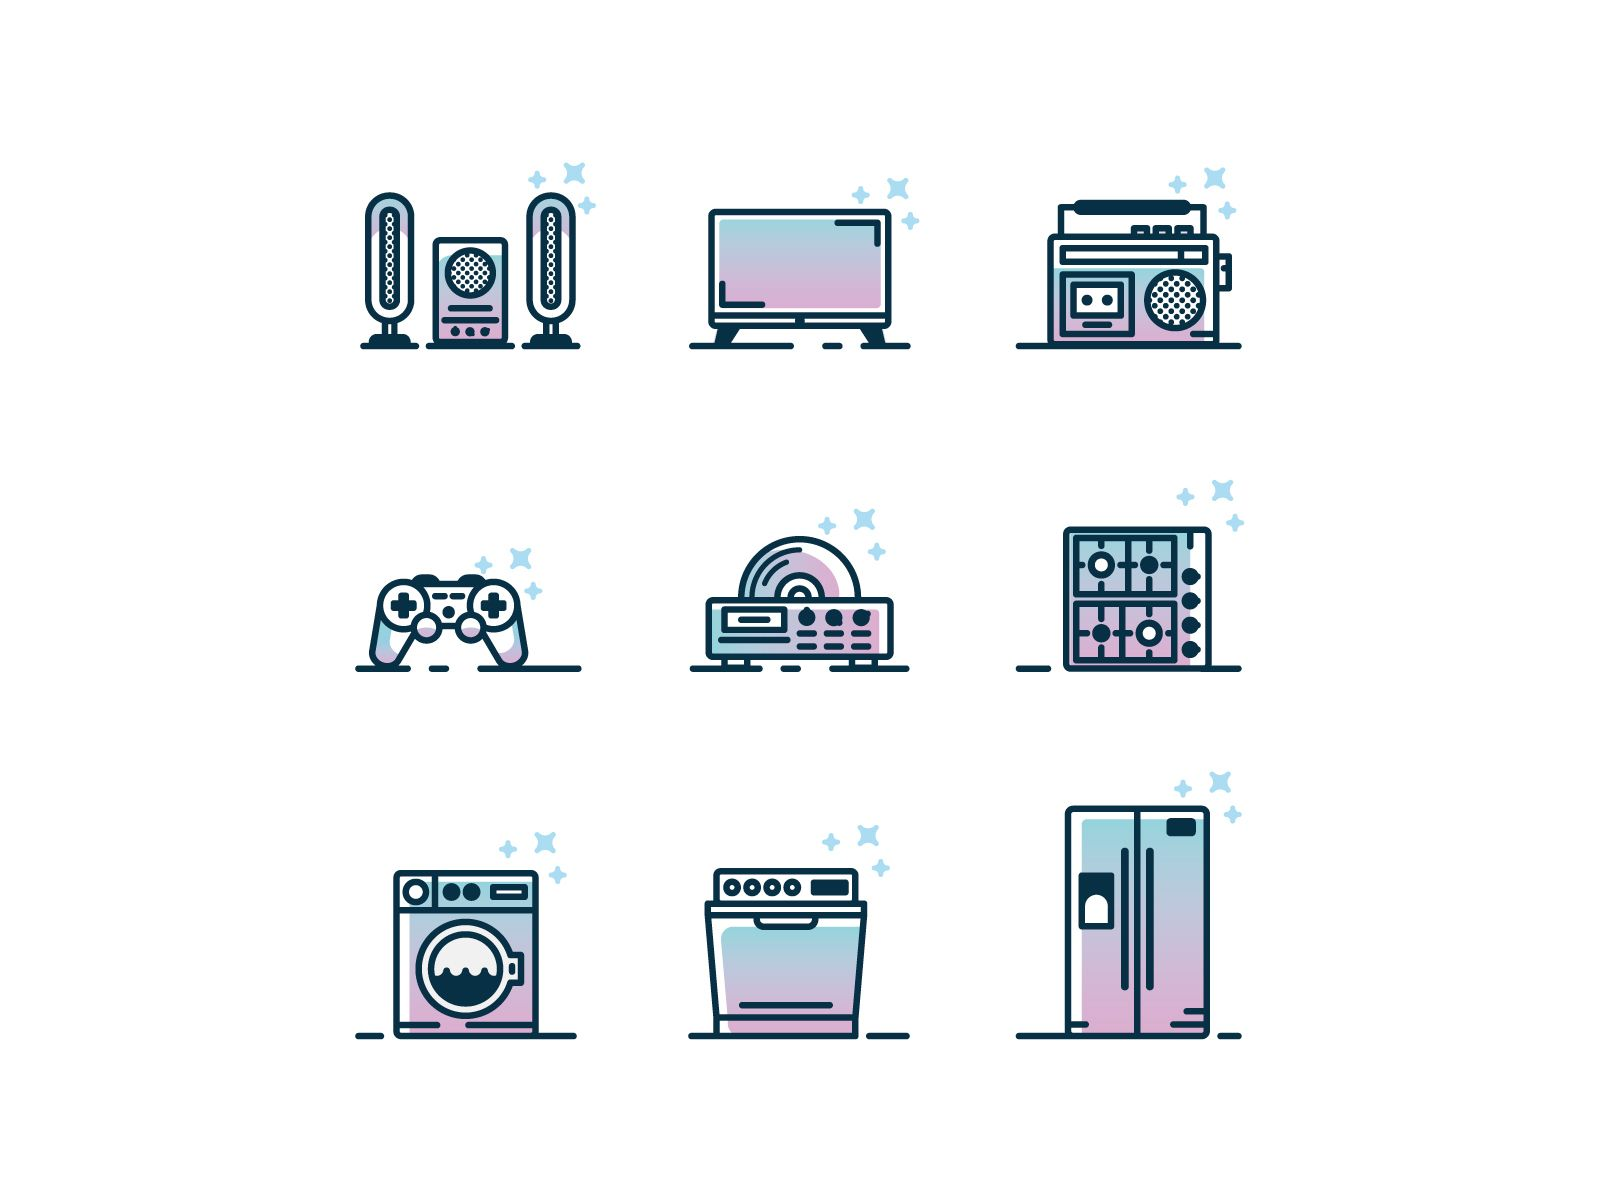 Home Insurance Icons Home Insurance Design Minimal Icon